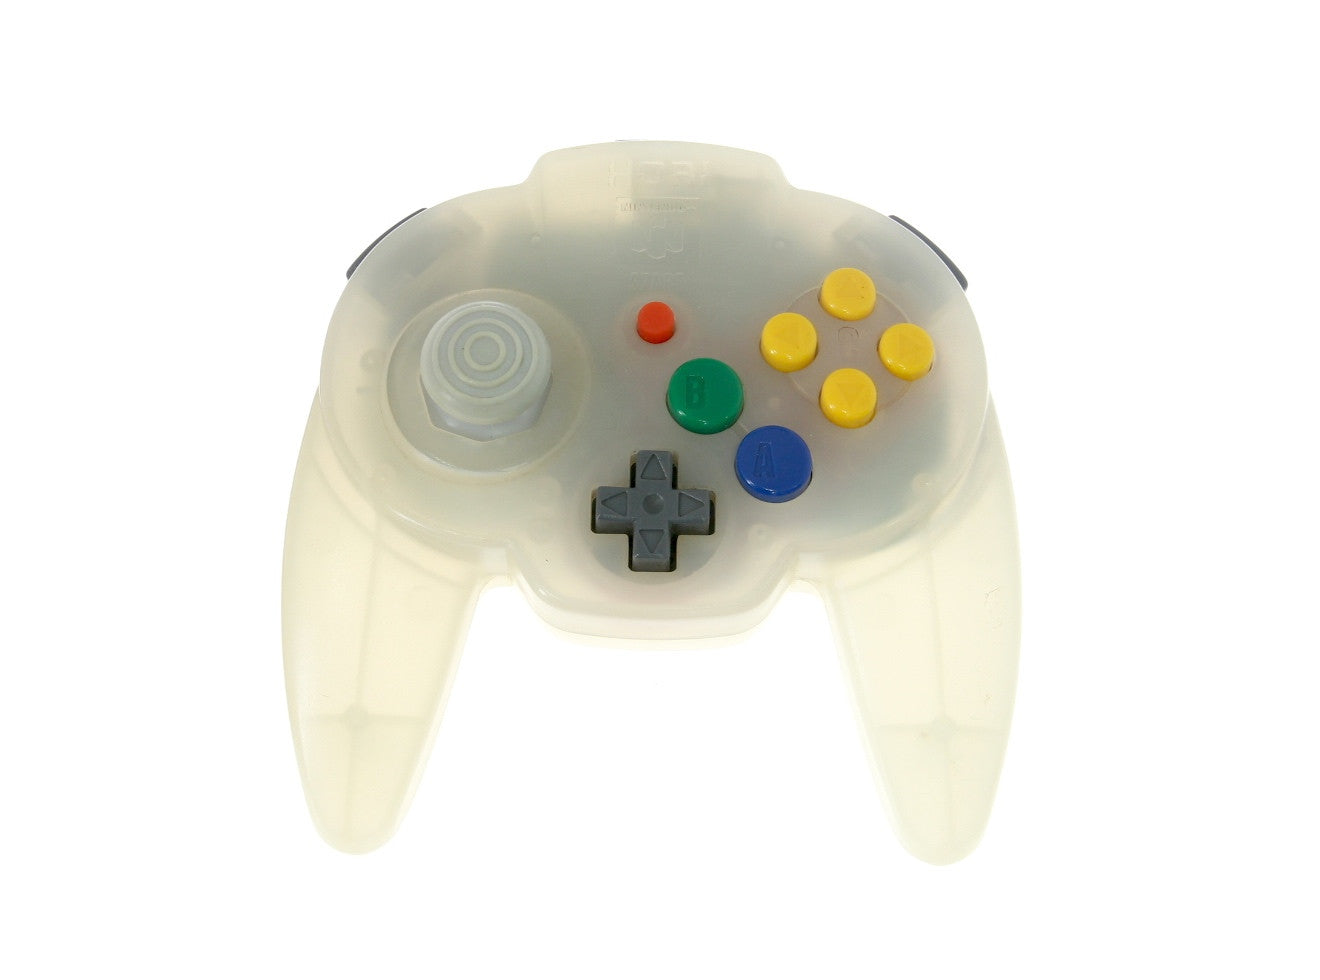 Image 1 for HORI Pad Mini 64 Snow White  (no box/manual)